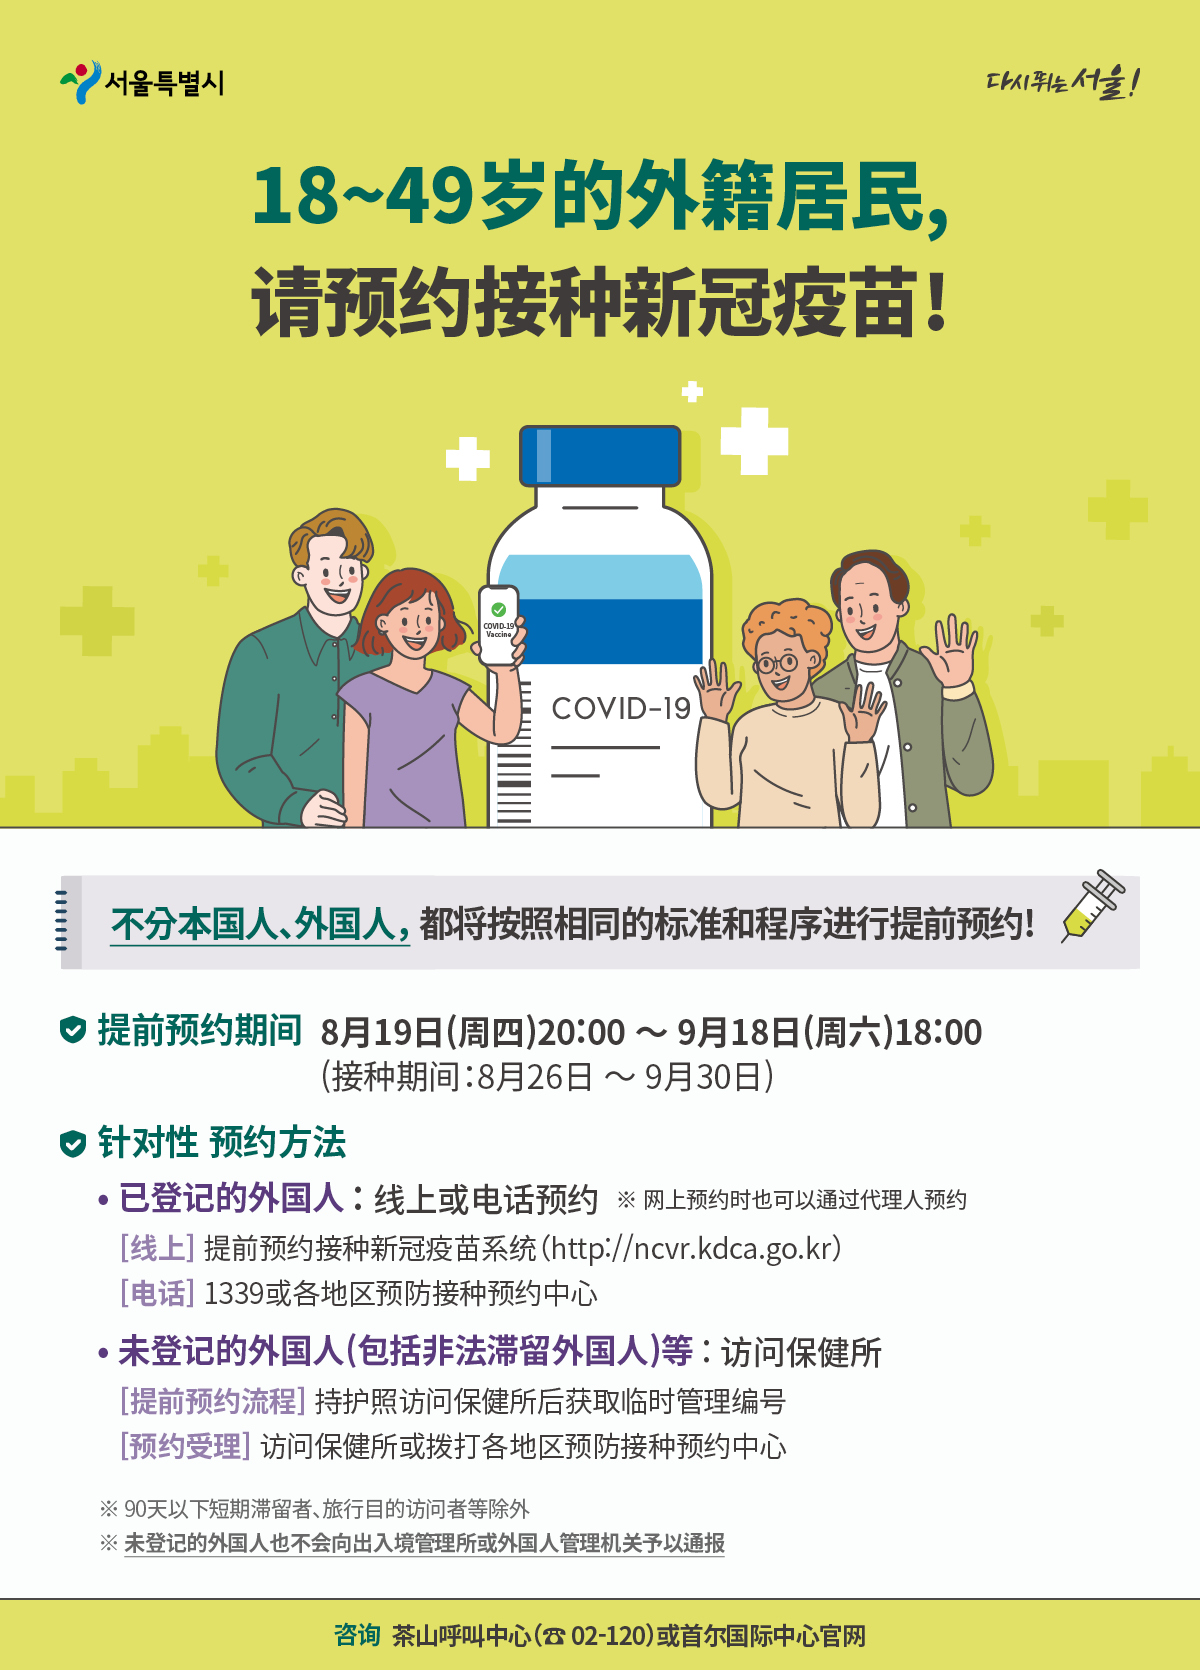 Foreign residents Aged 18-49, Book an Appointment for COVID-19 Vaccination! chinese poster